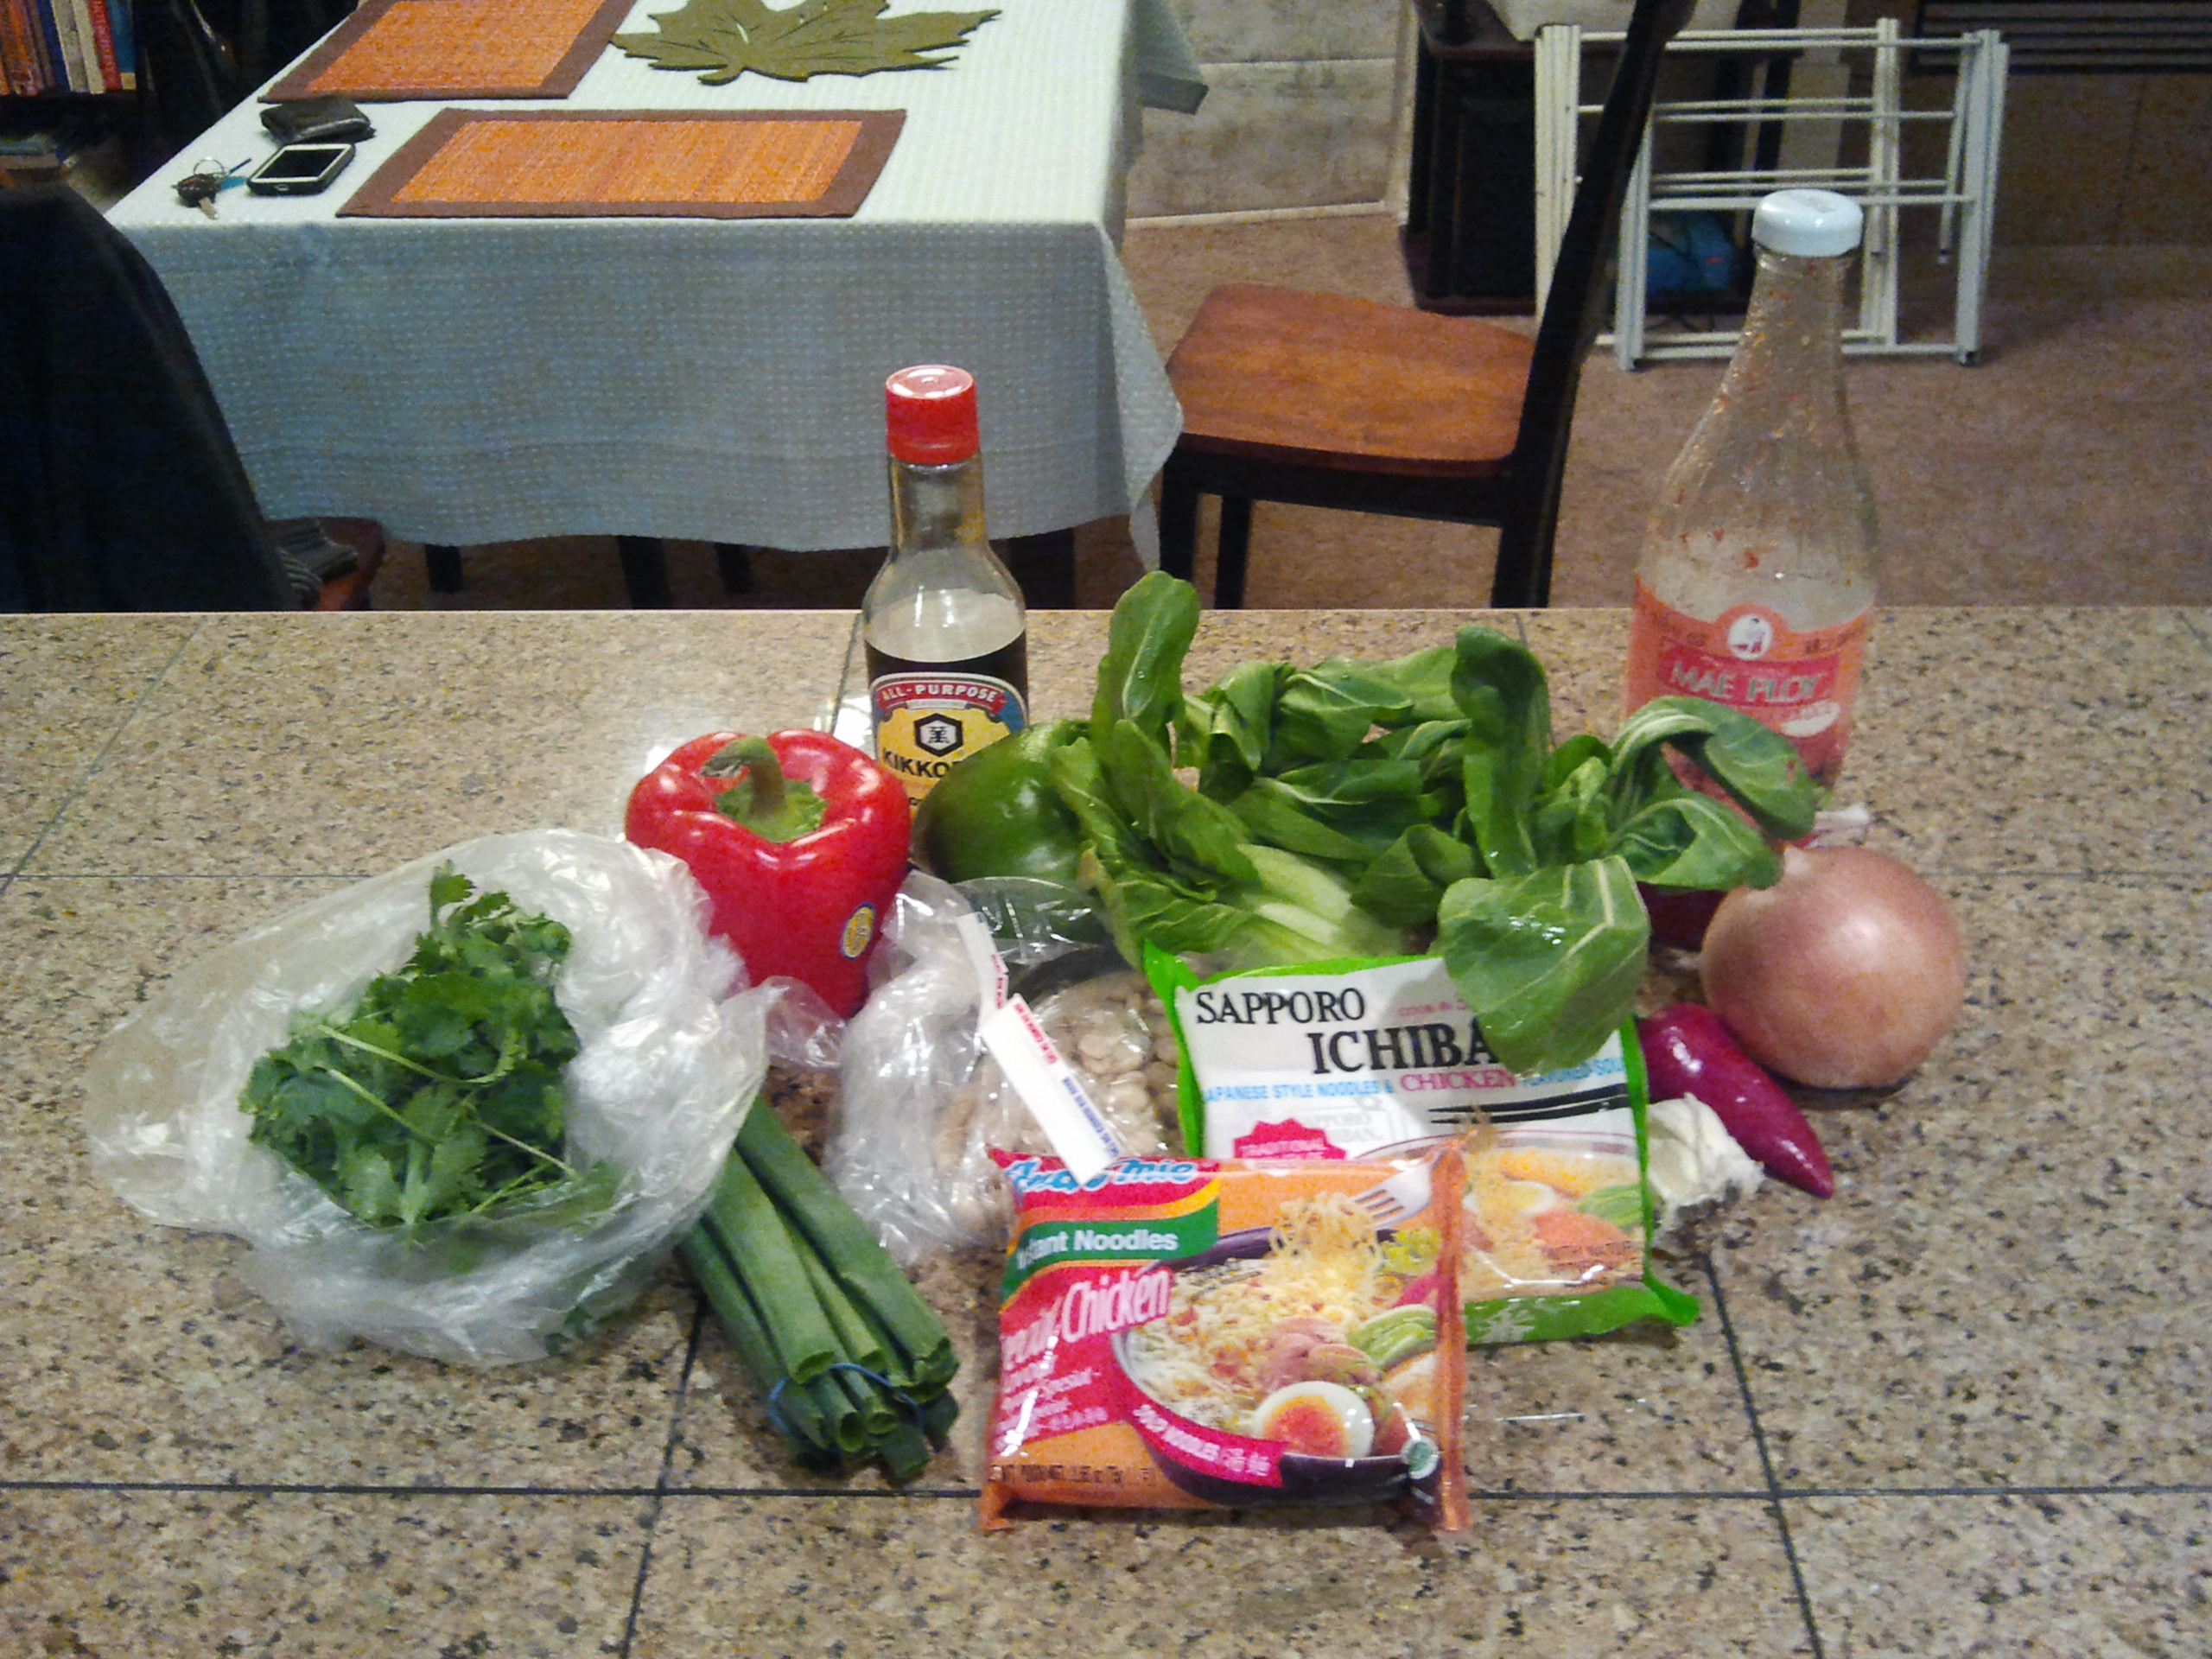 Instant noodle ingredients